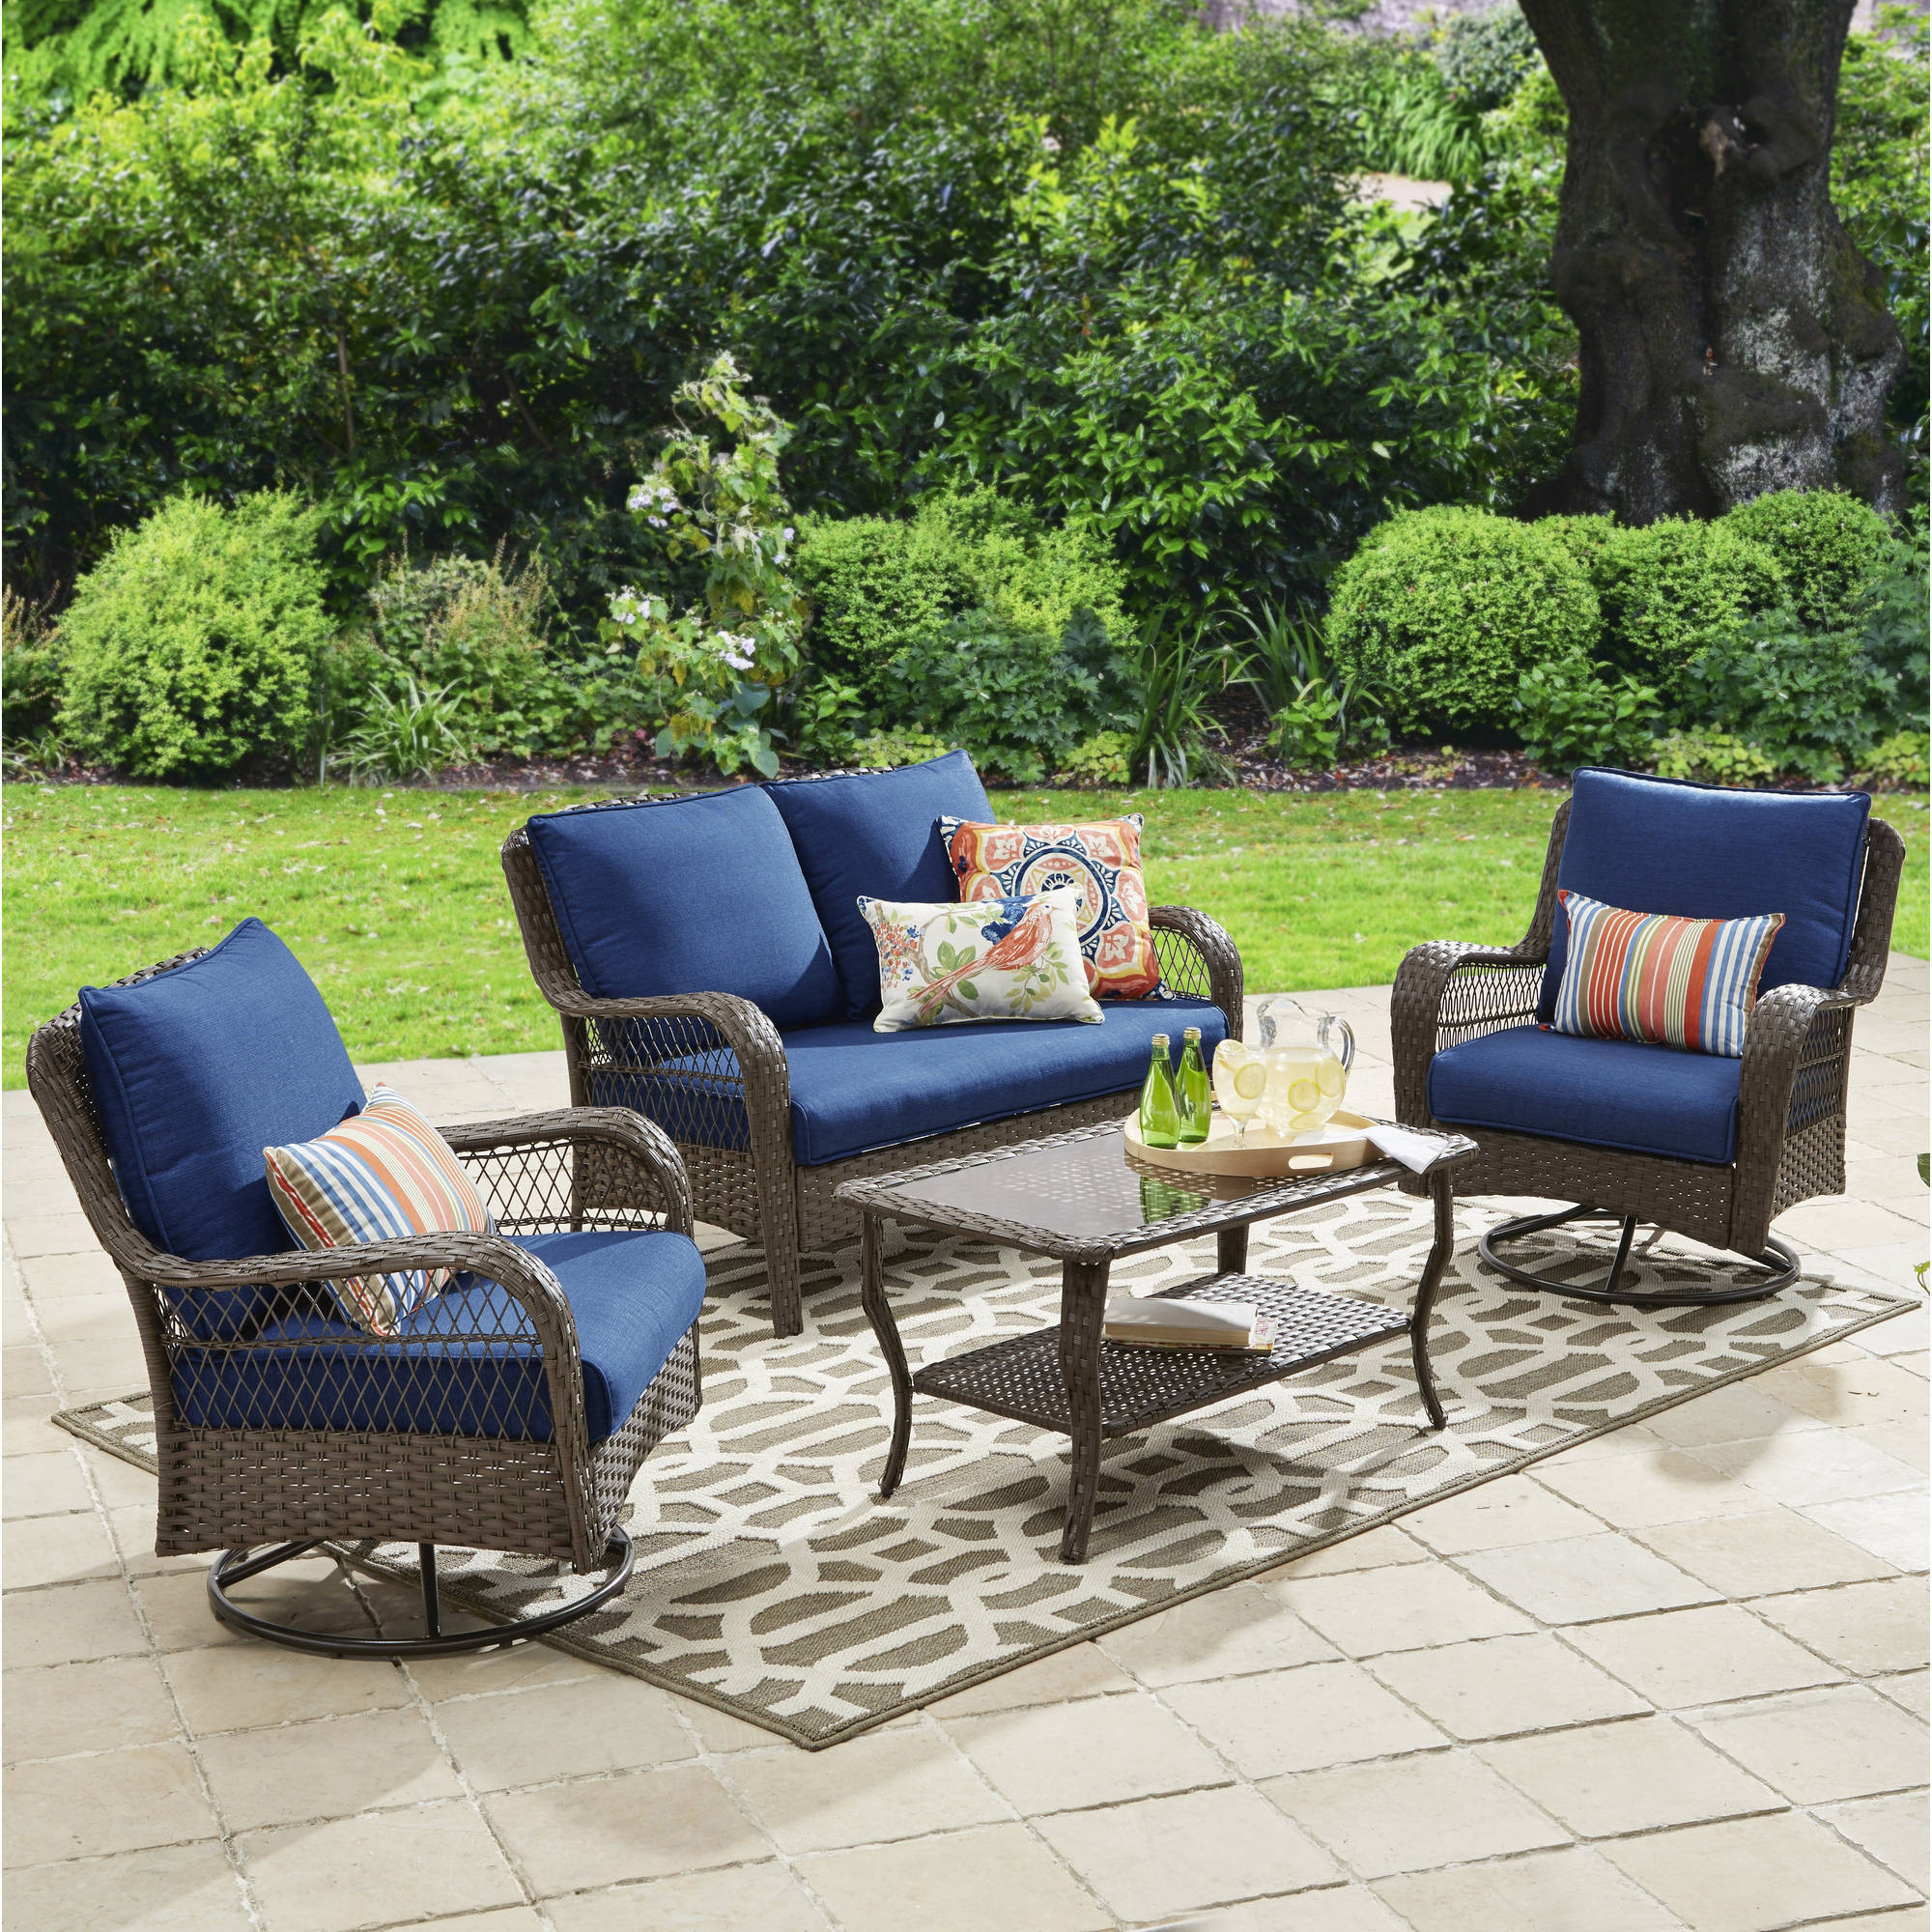 Best ideas about Patio Furniture Walmart . Save or Pin Better Homes and Gardens Patio Furniture Walmart Now.